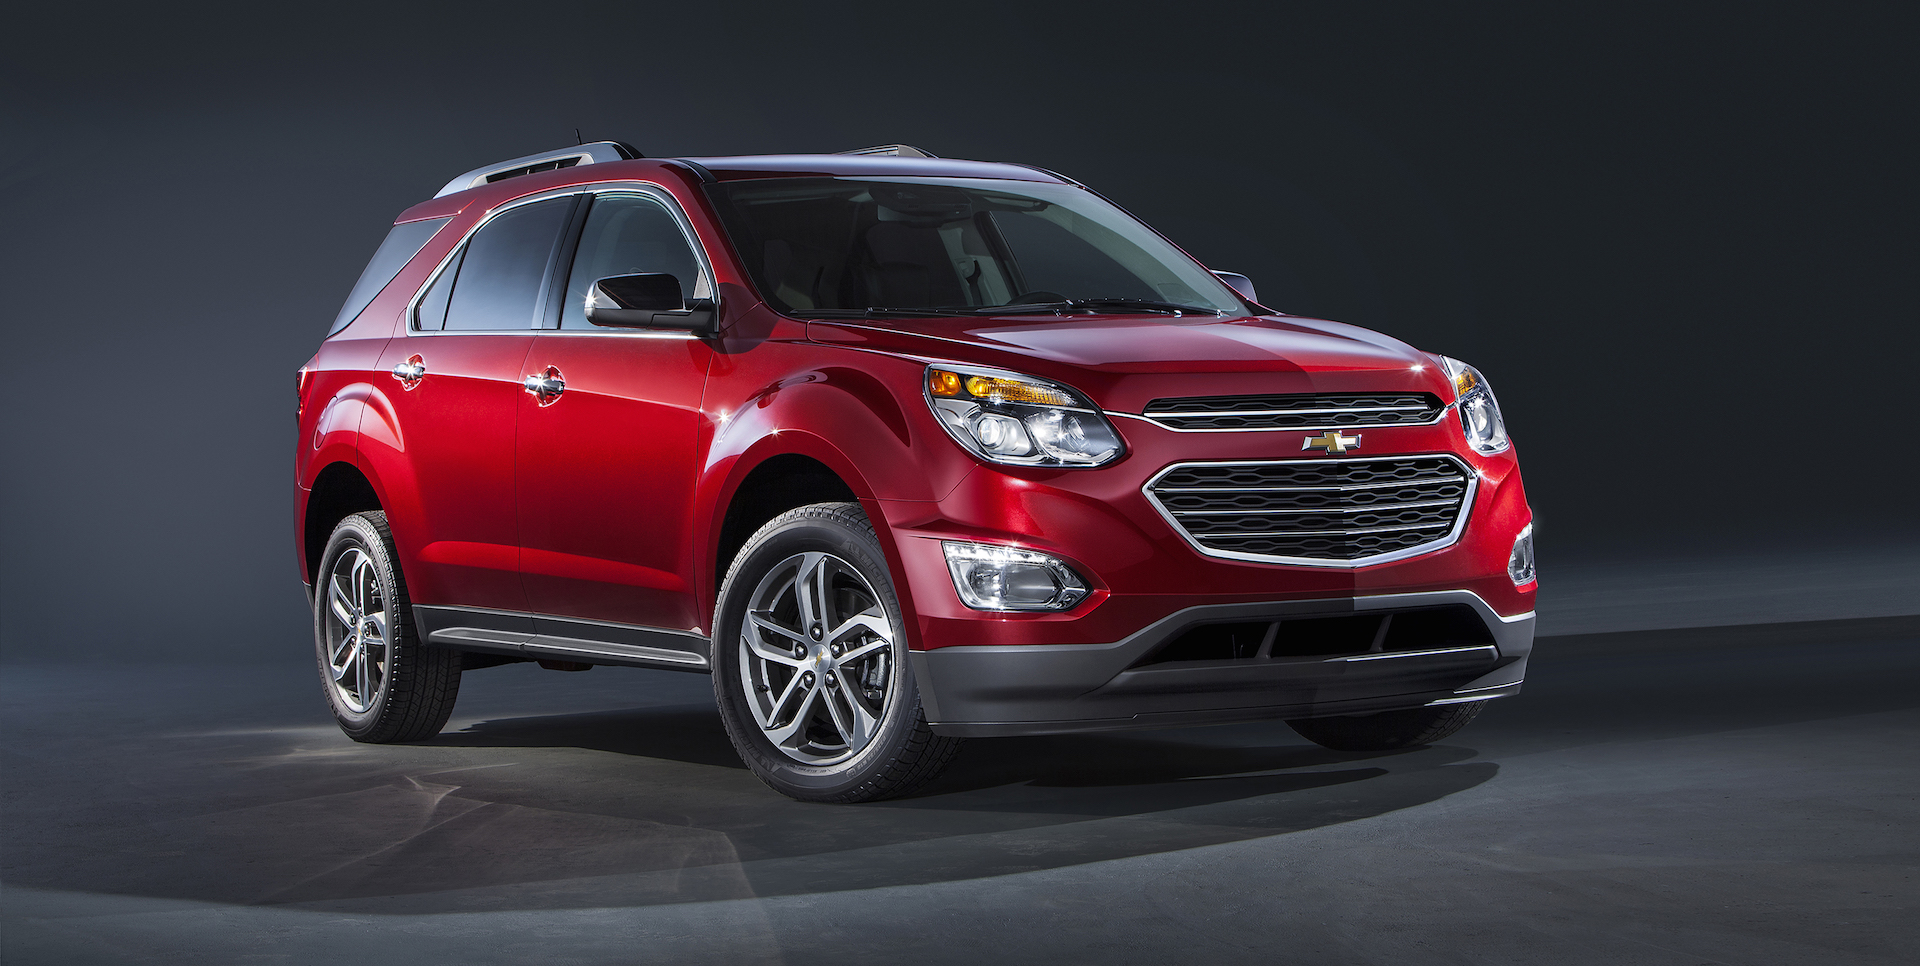 2016 chevrolet equinox updated suv unveiled at 2015 chicago auto show. Black Bedroom Furniture Sets. Home Design Ideas